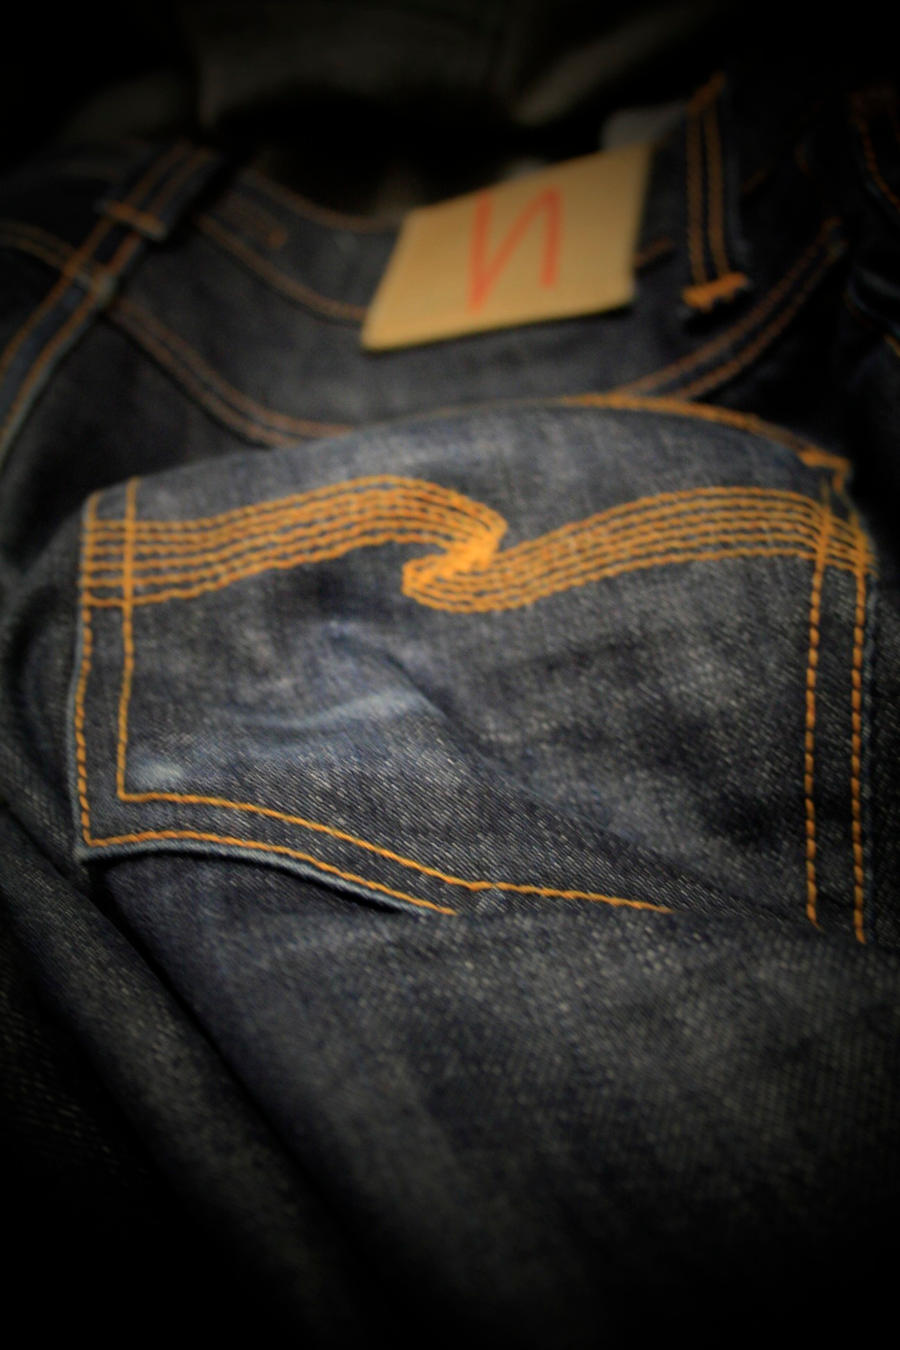 Nudie Jeans IPhone Wallpaper By Jackylee1990